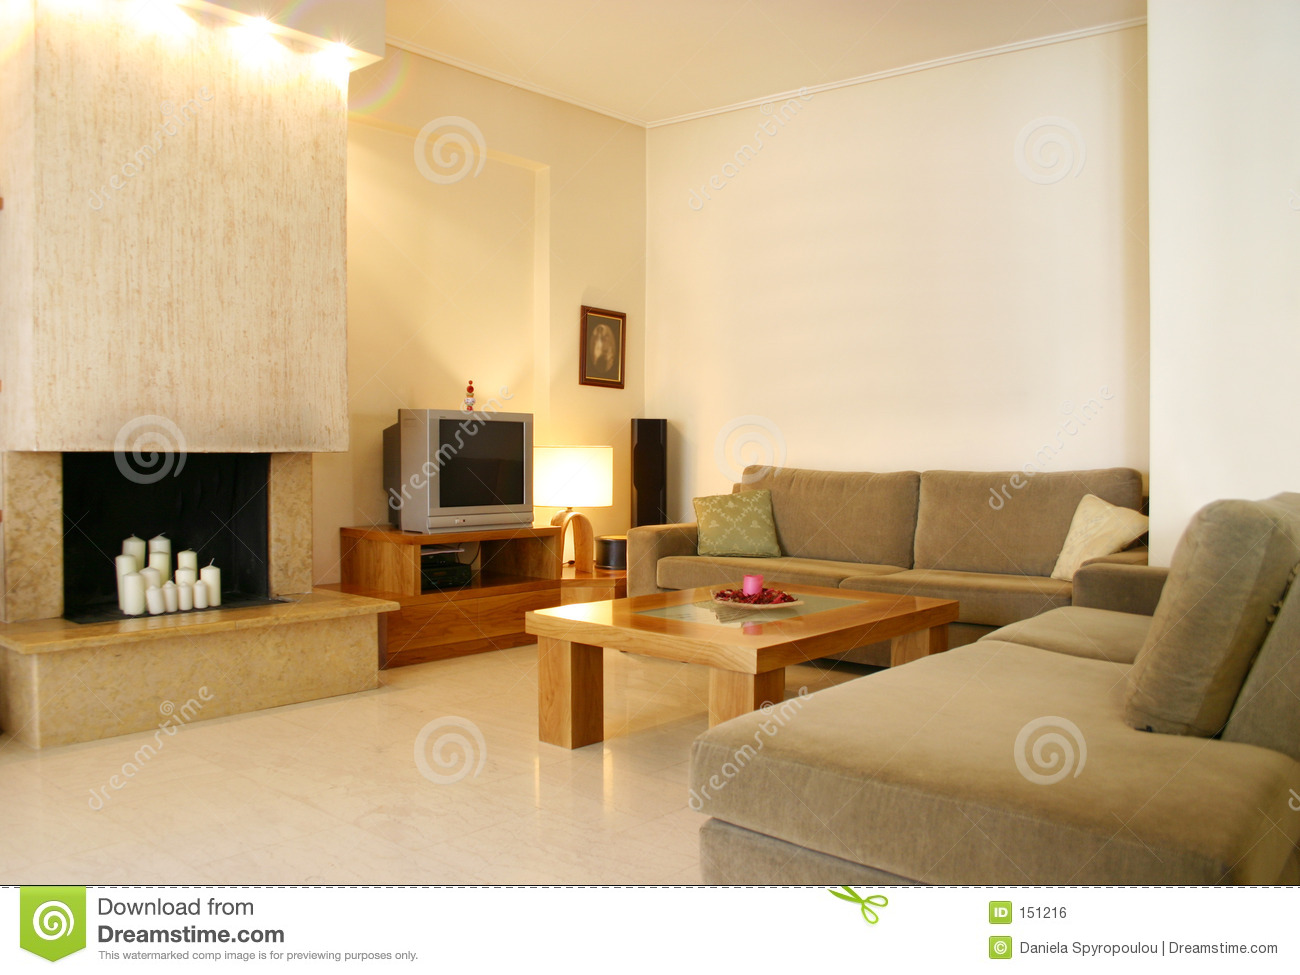 Home interior design stock photo image of modern for Home best interior design